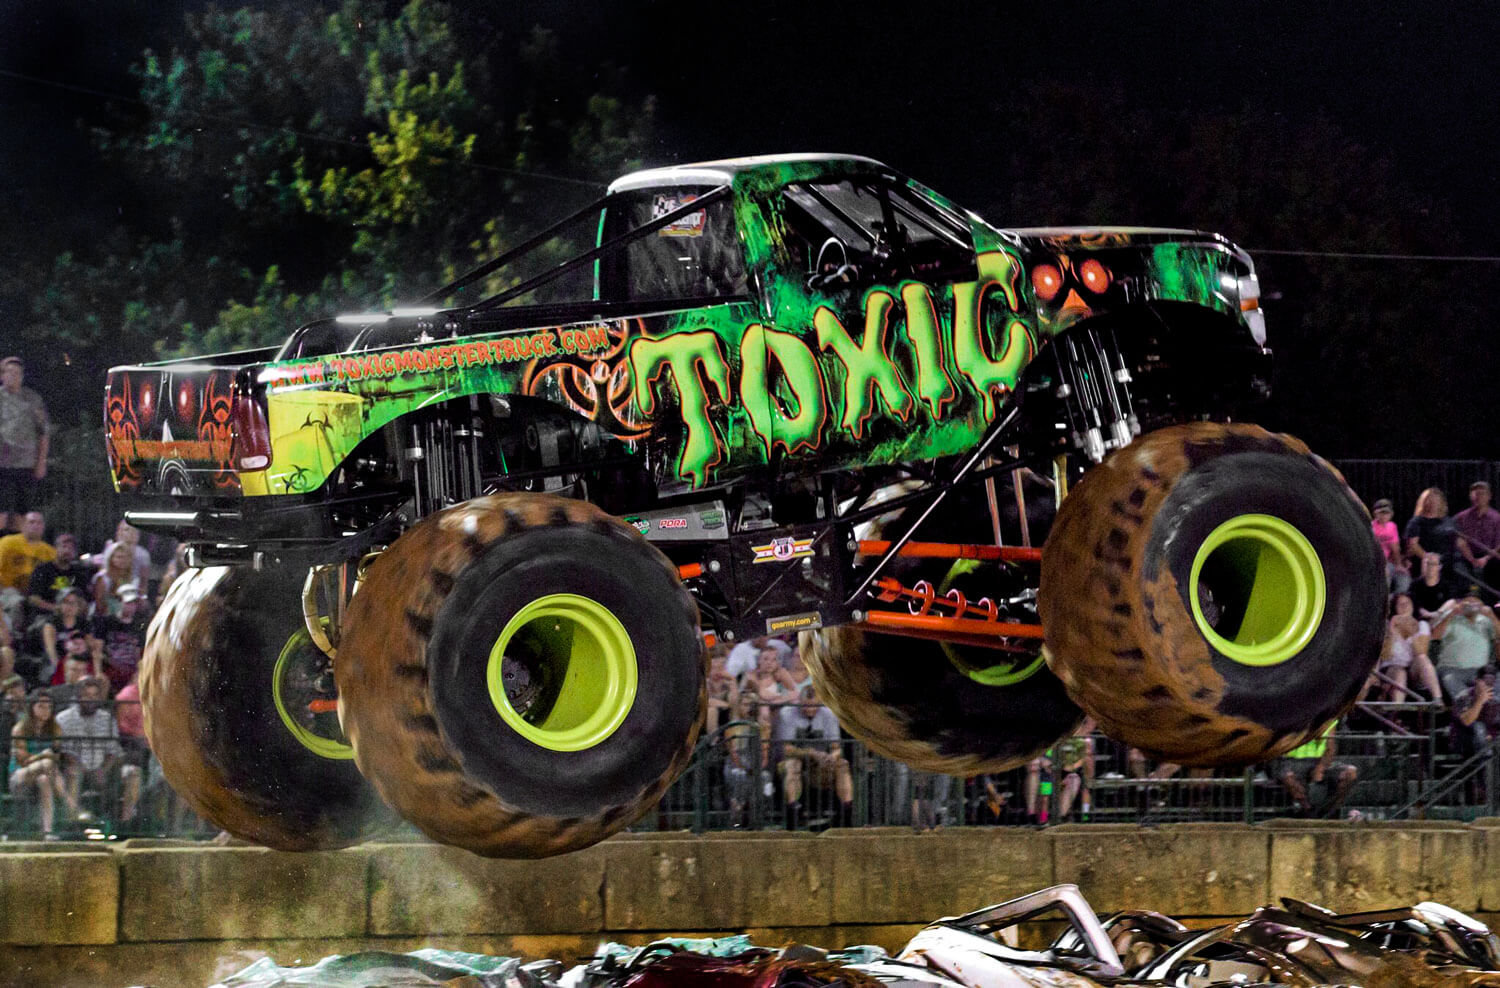 toxic monster truck official site of the toxic monster truck. Black Bedroom Furniture Sets. Home Design Ideas